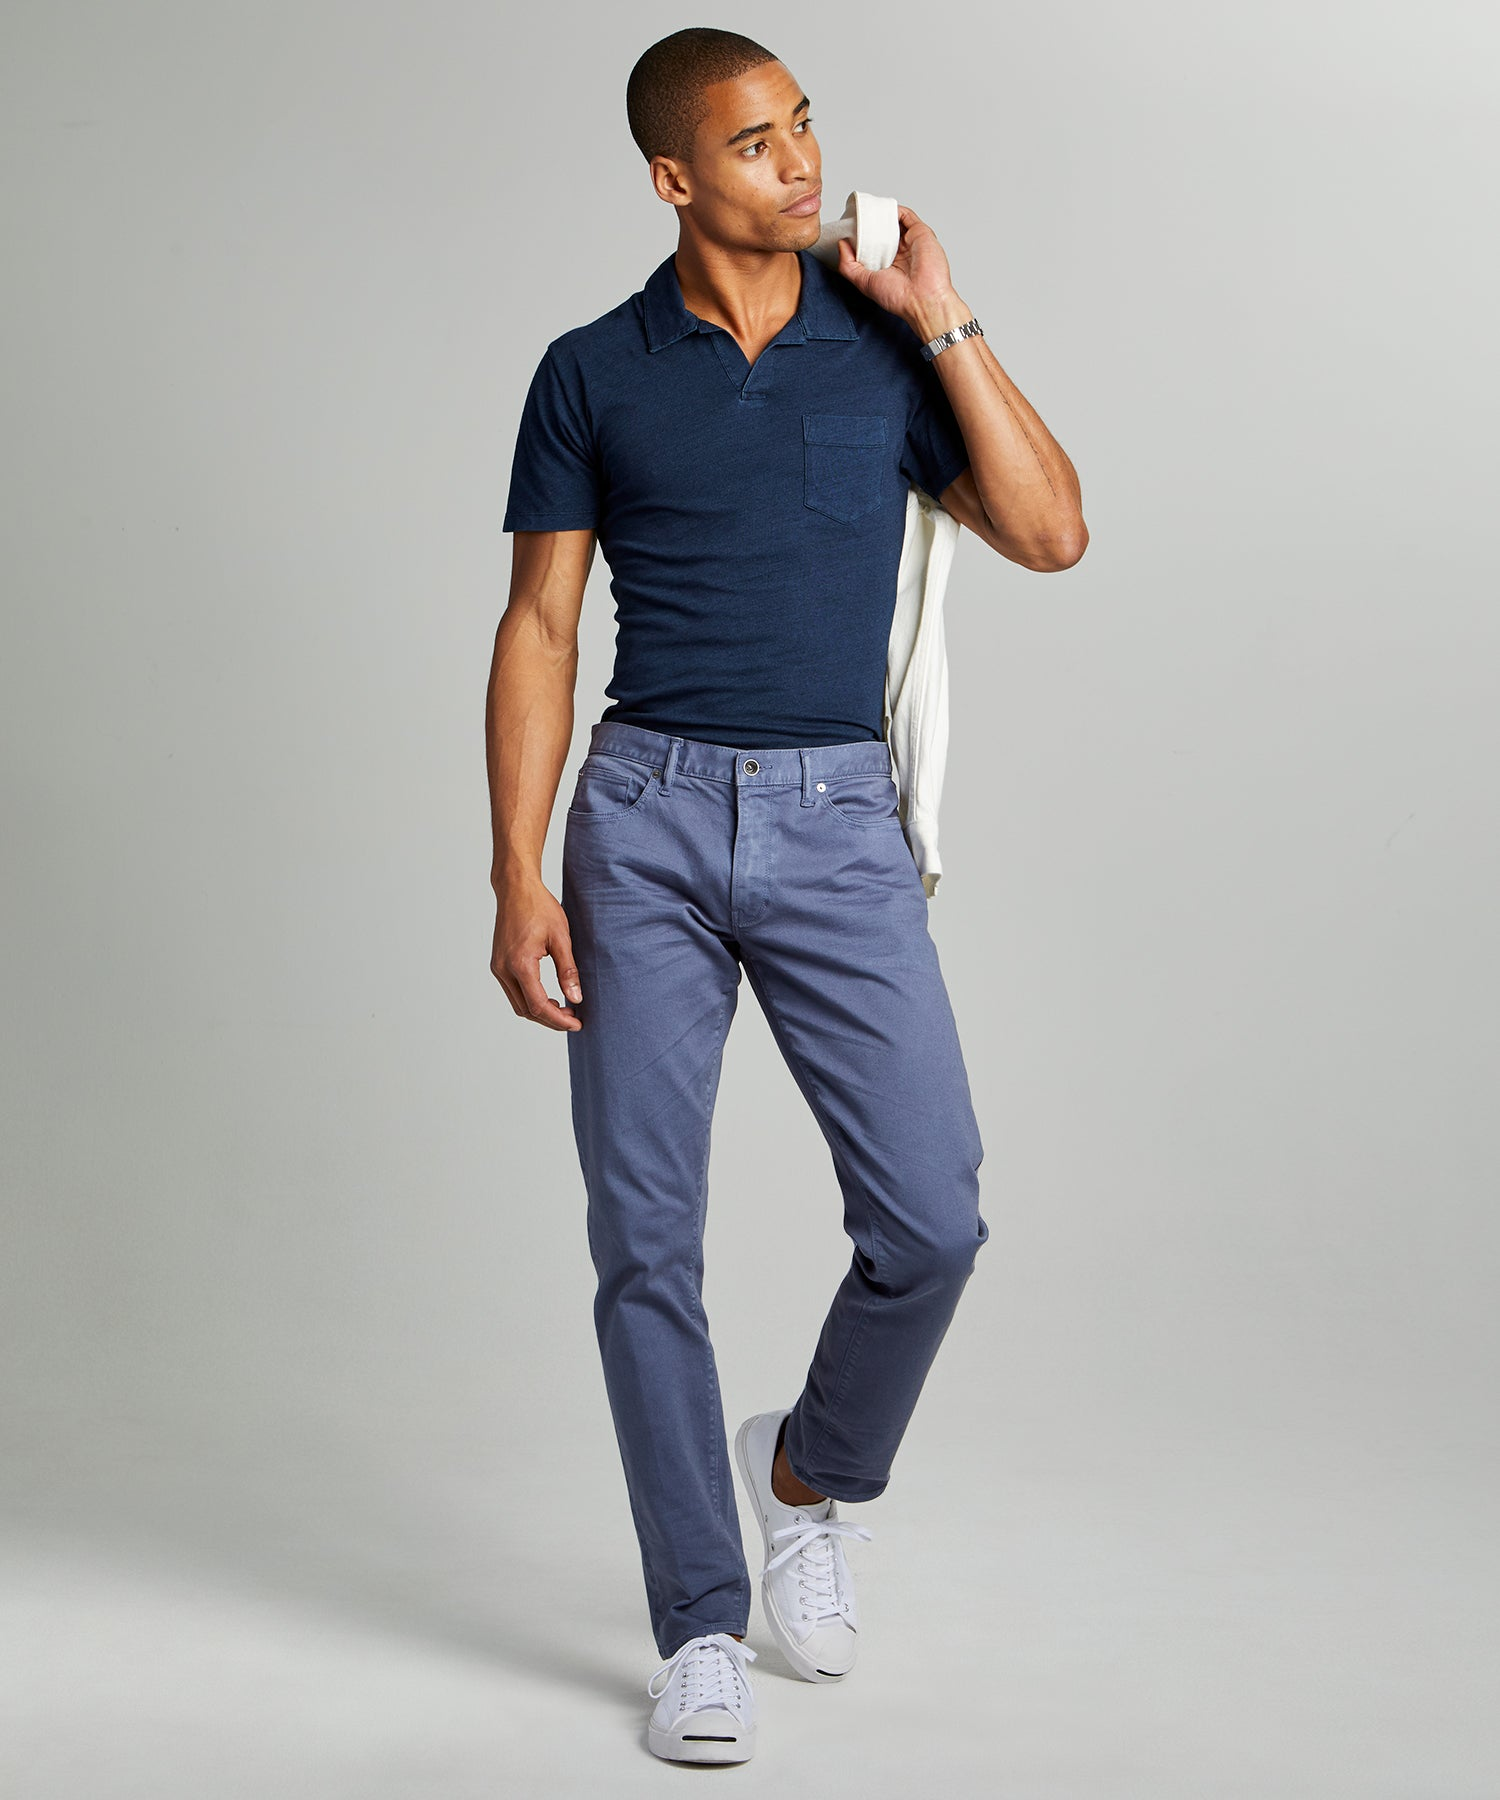 Slim Fit 5-Pocket Garment-Dyed Stretch Twill in Cadet Blue